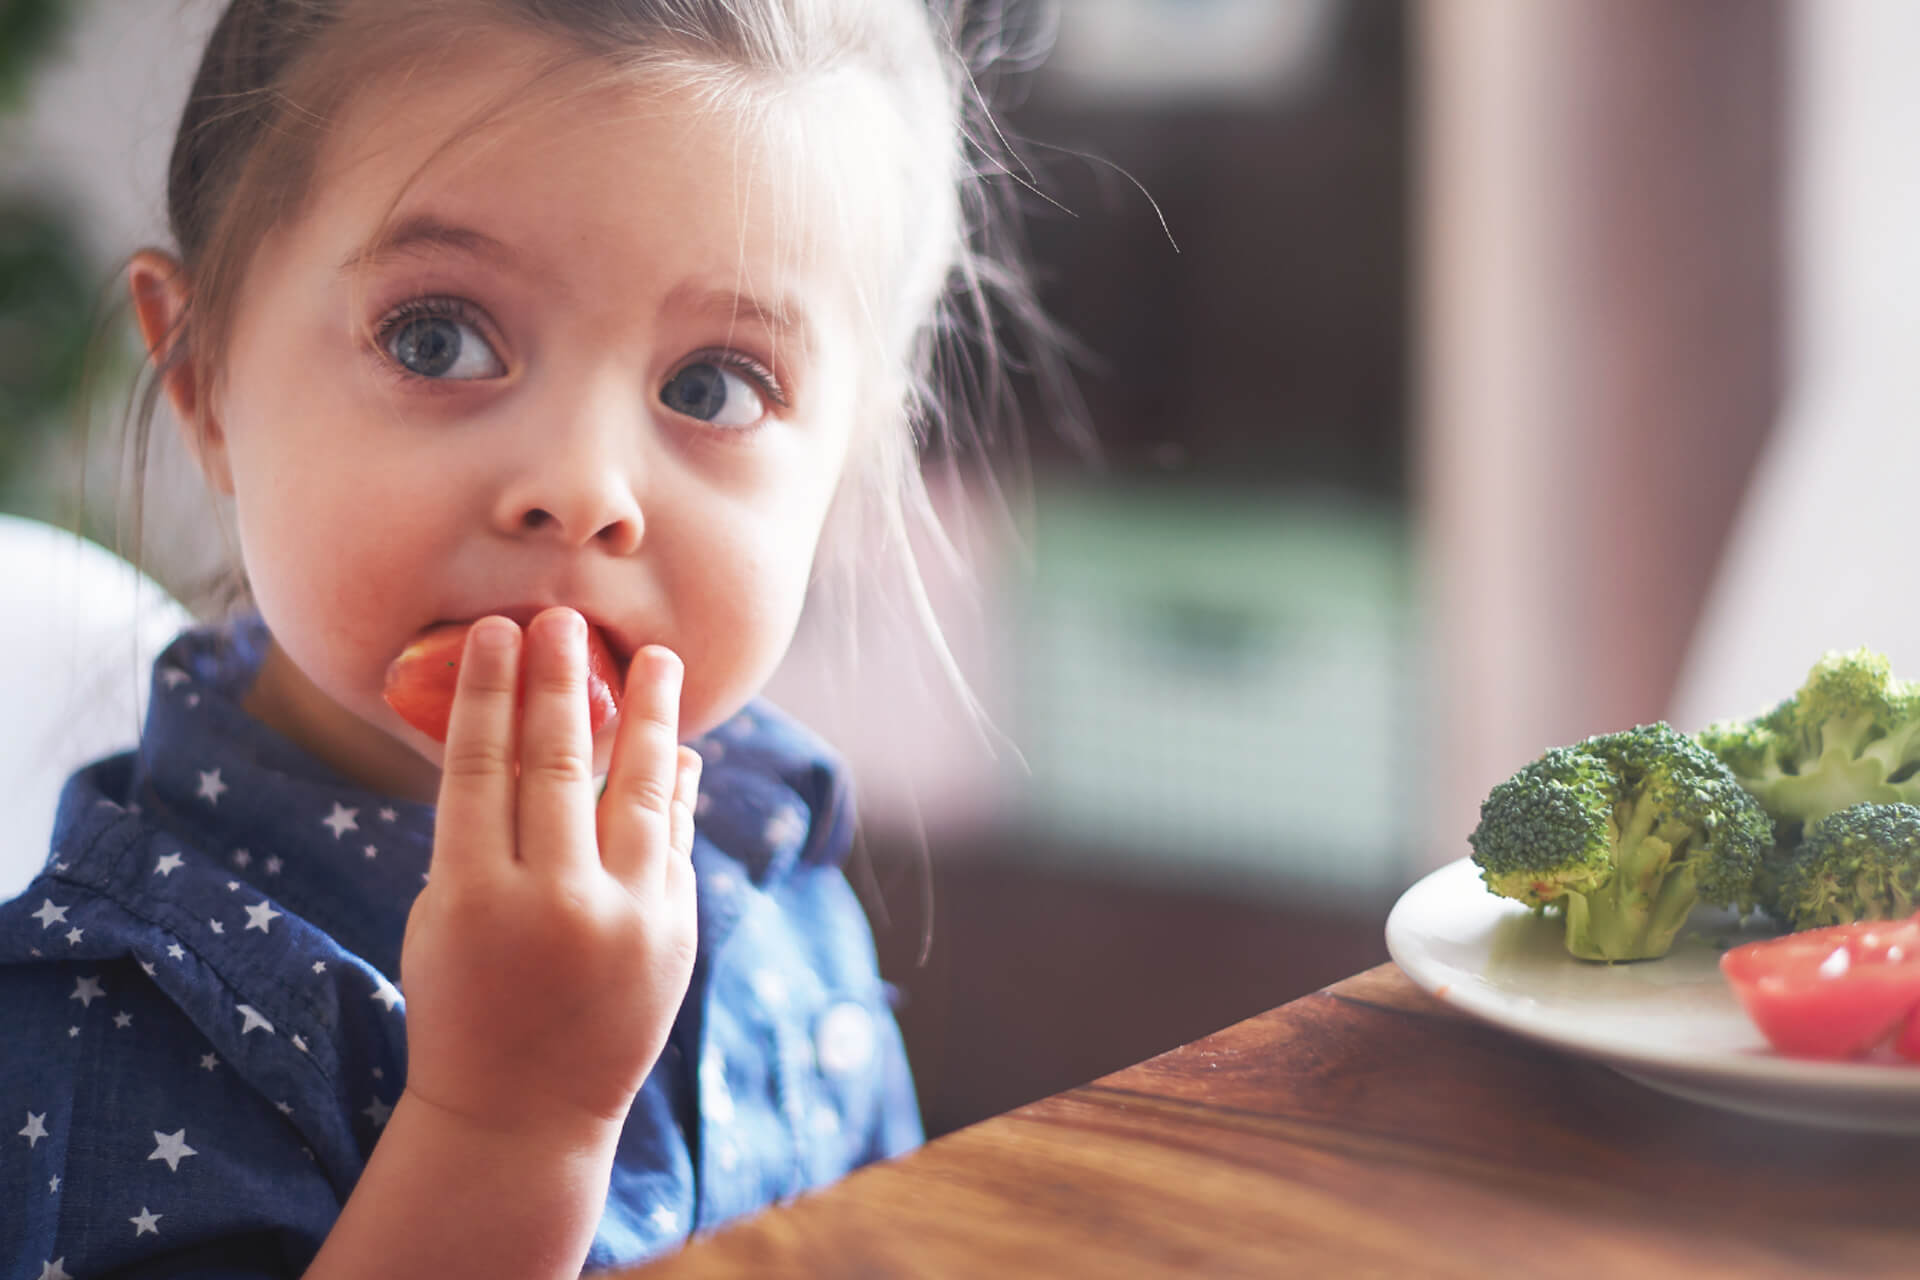 Child at Table Eating Vegetables